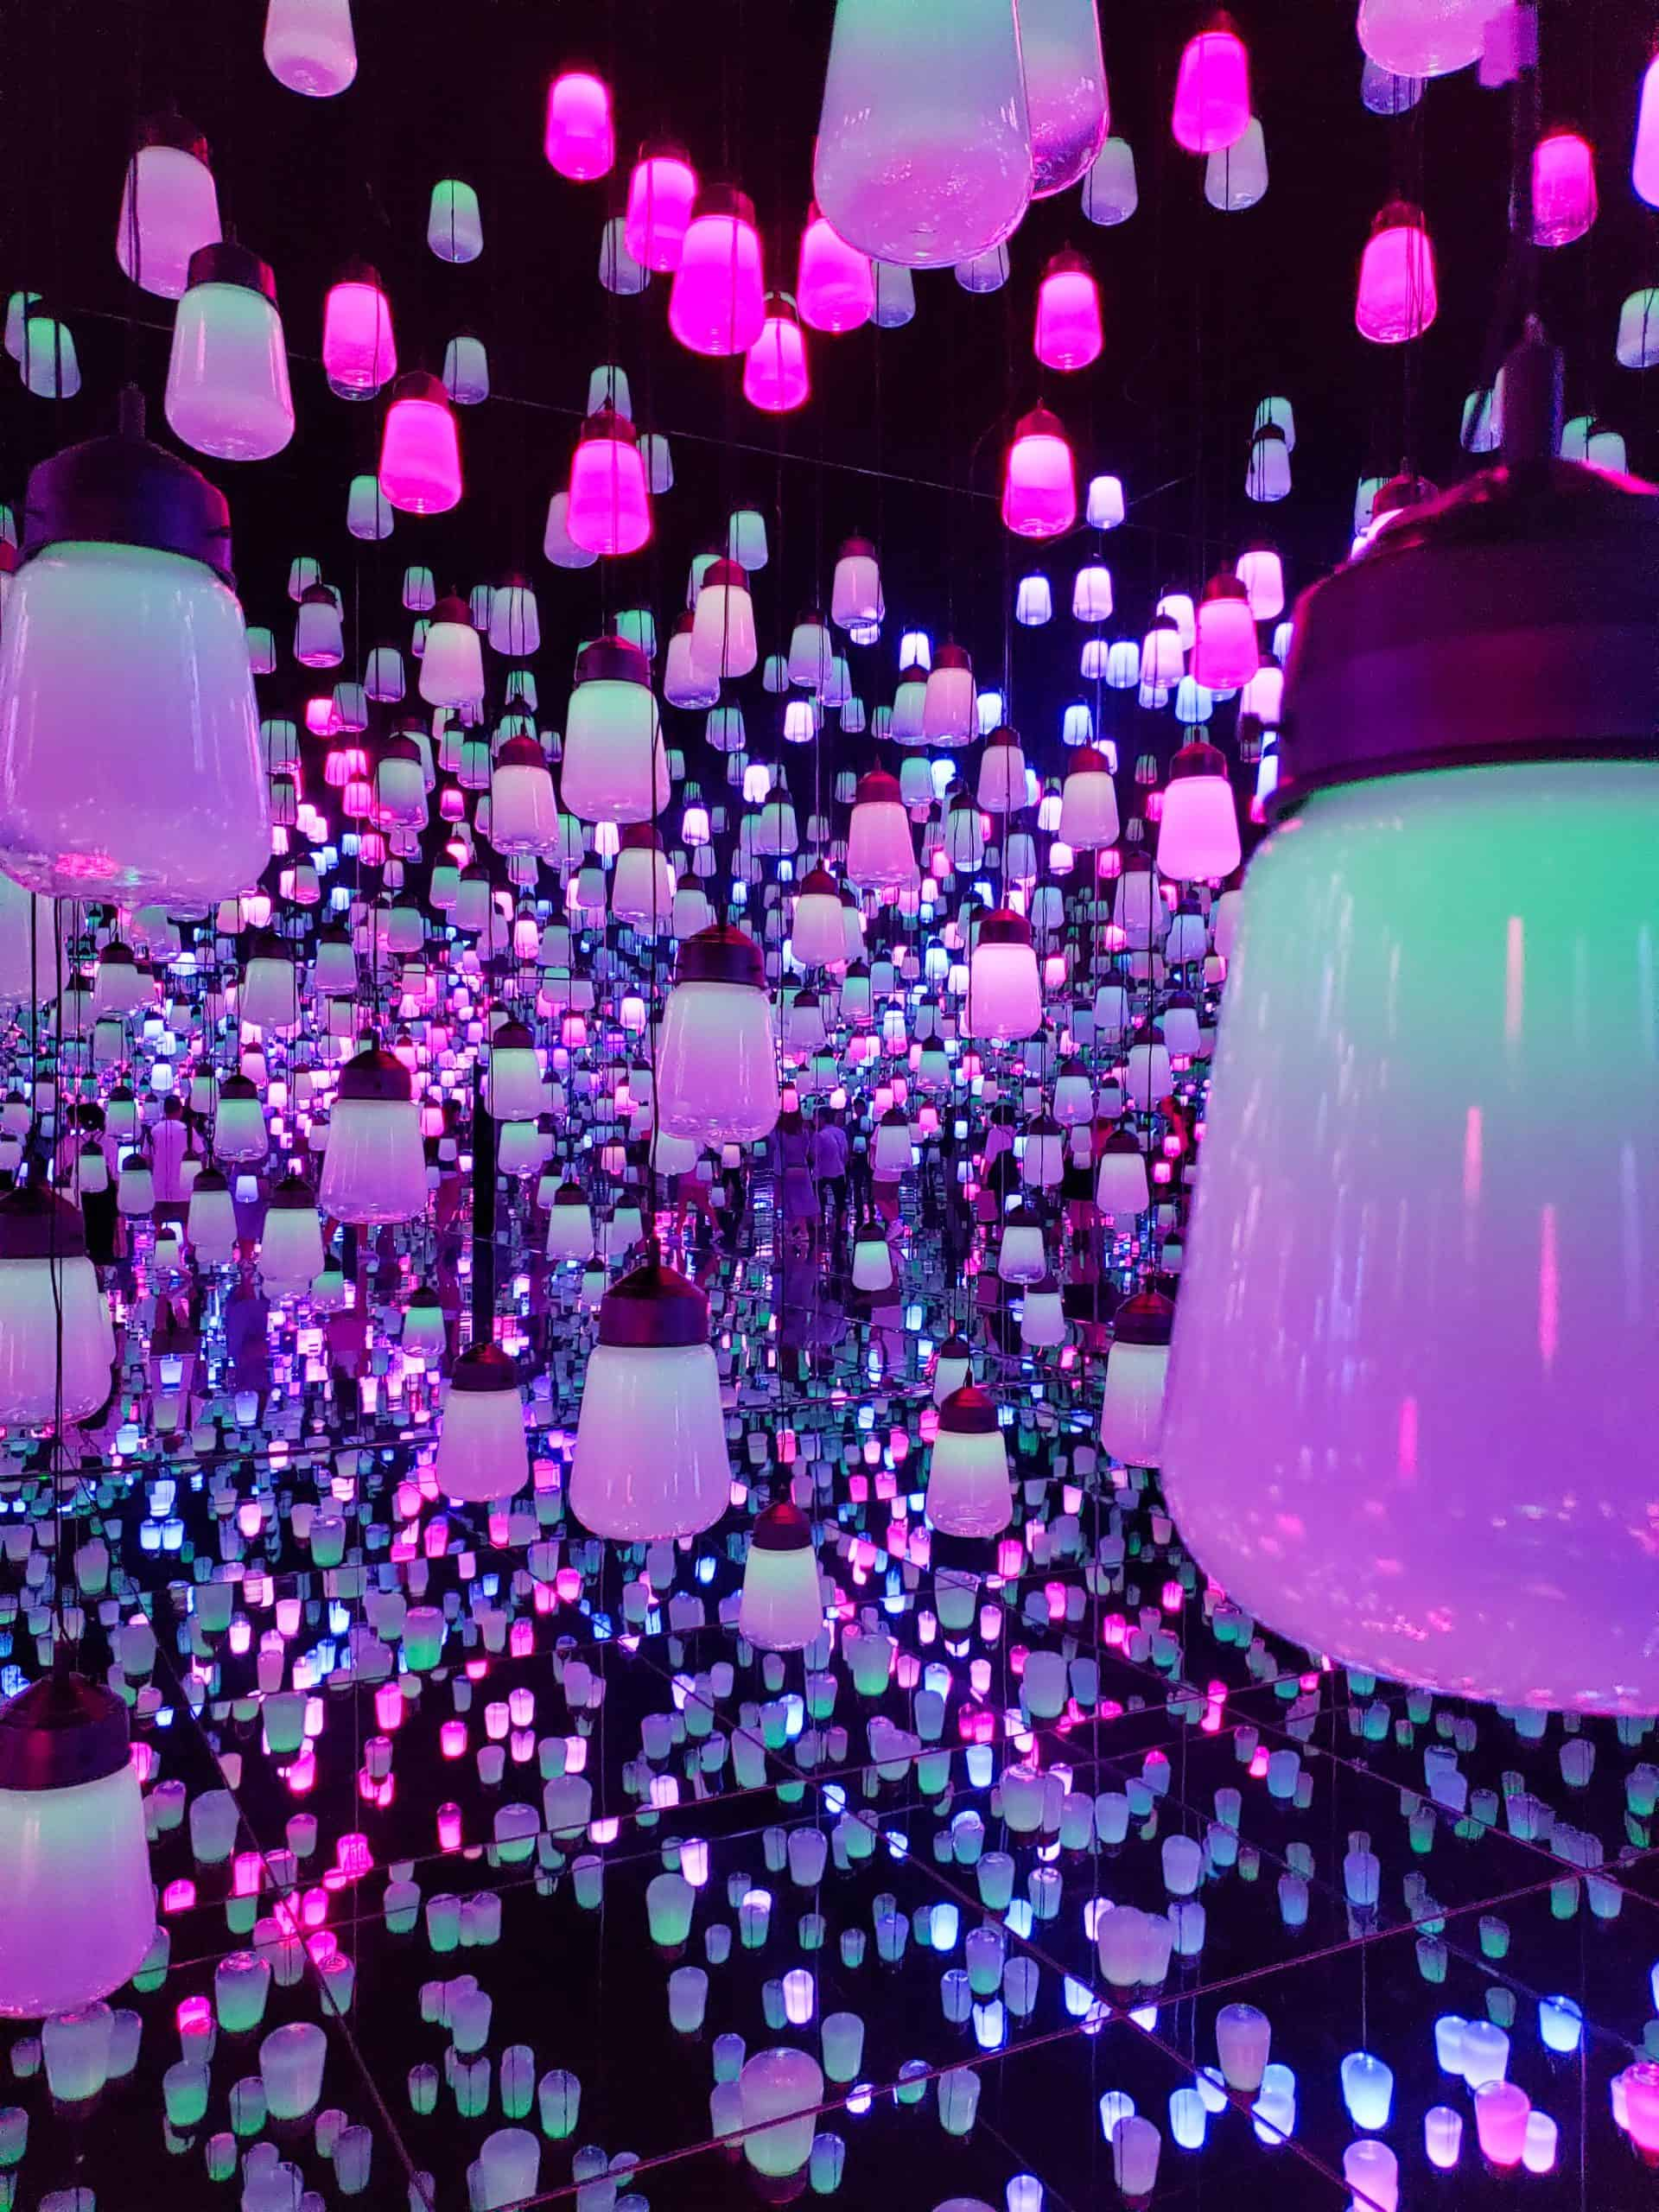 Visiting teamLab Borderless: What to Expect